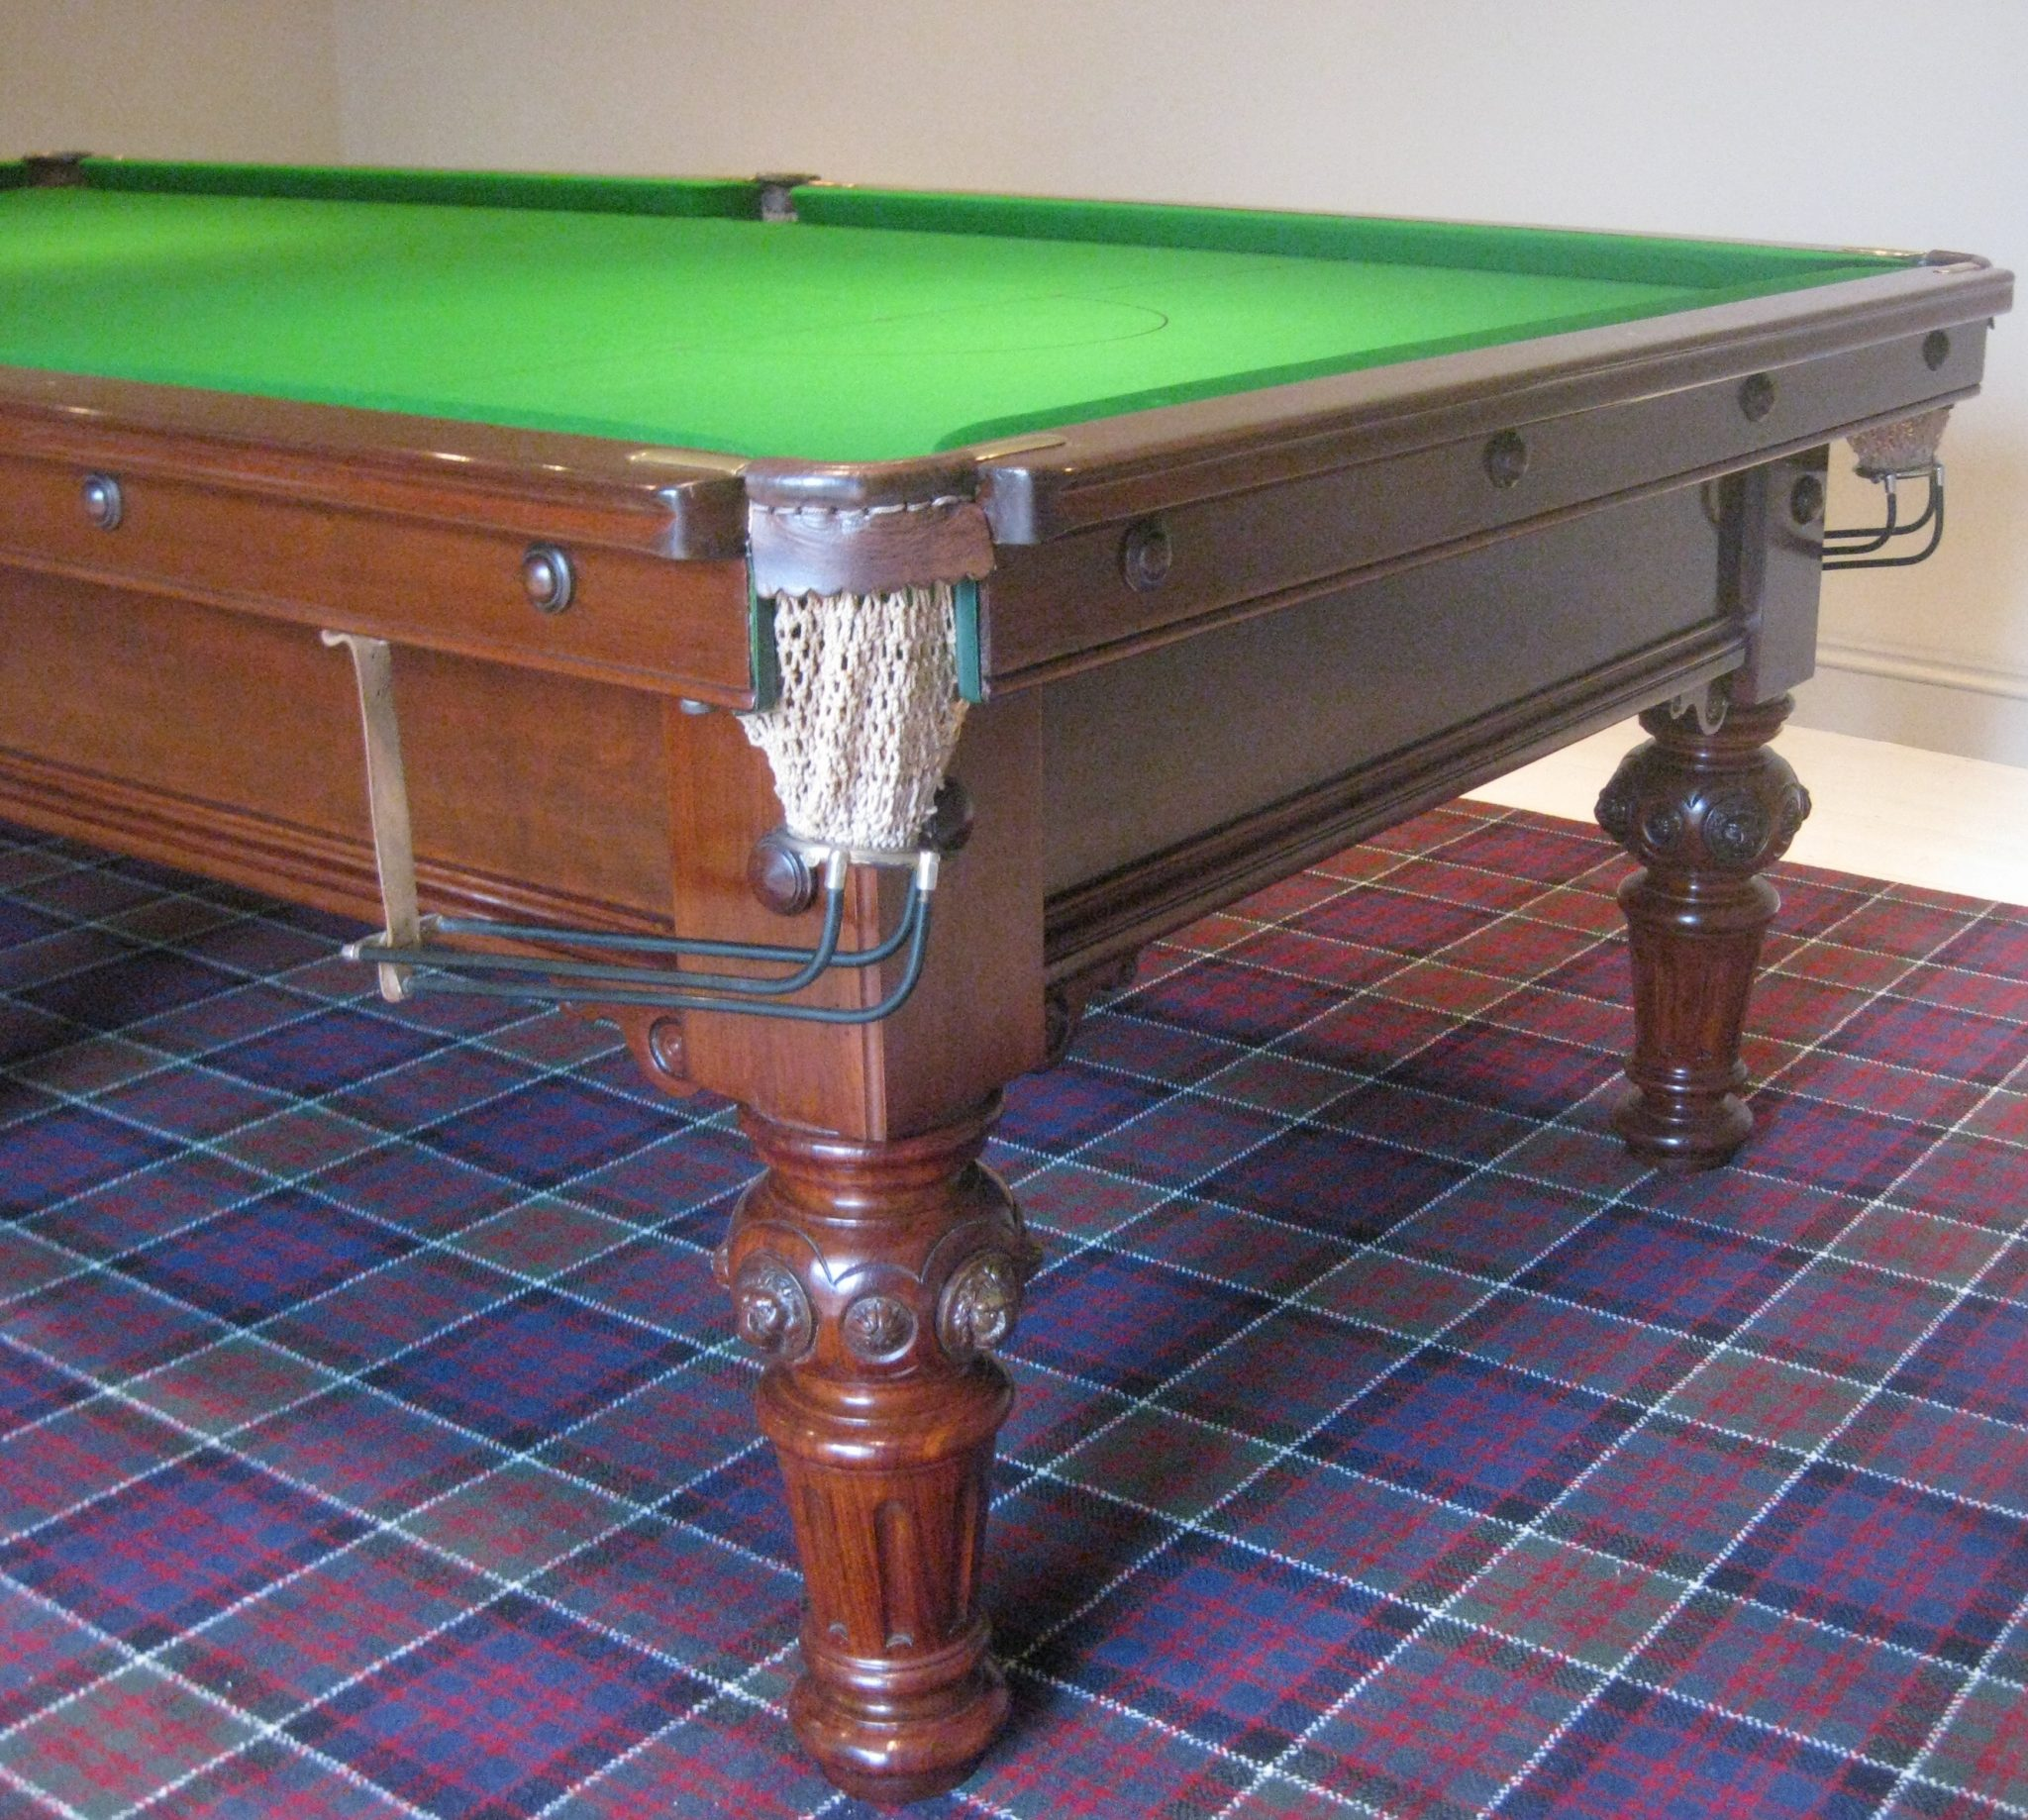 9ft thomas mawson antique mahogany snooker table 3 for 12ft snooker table for sale uk